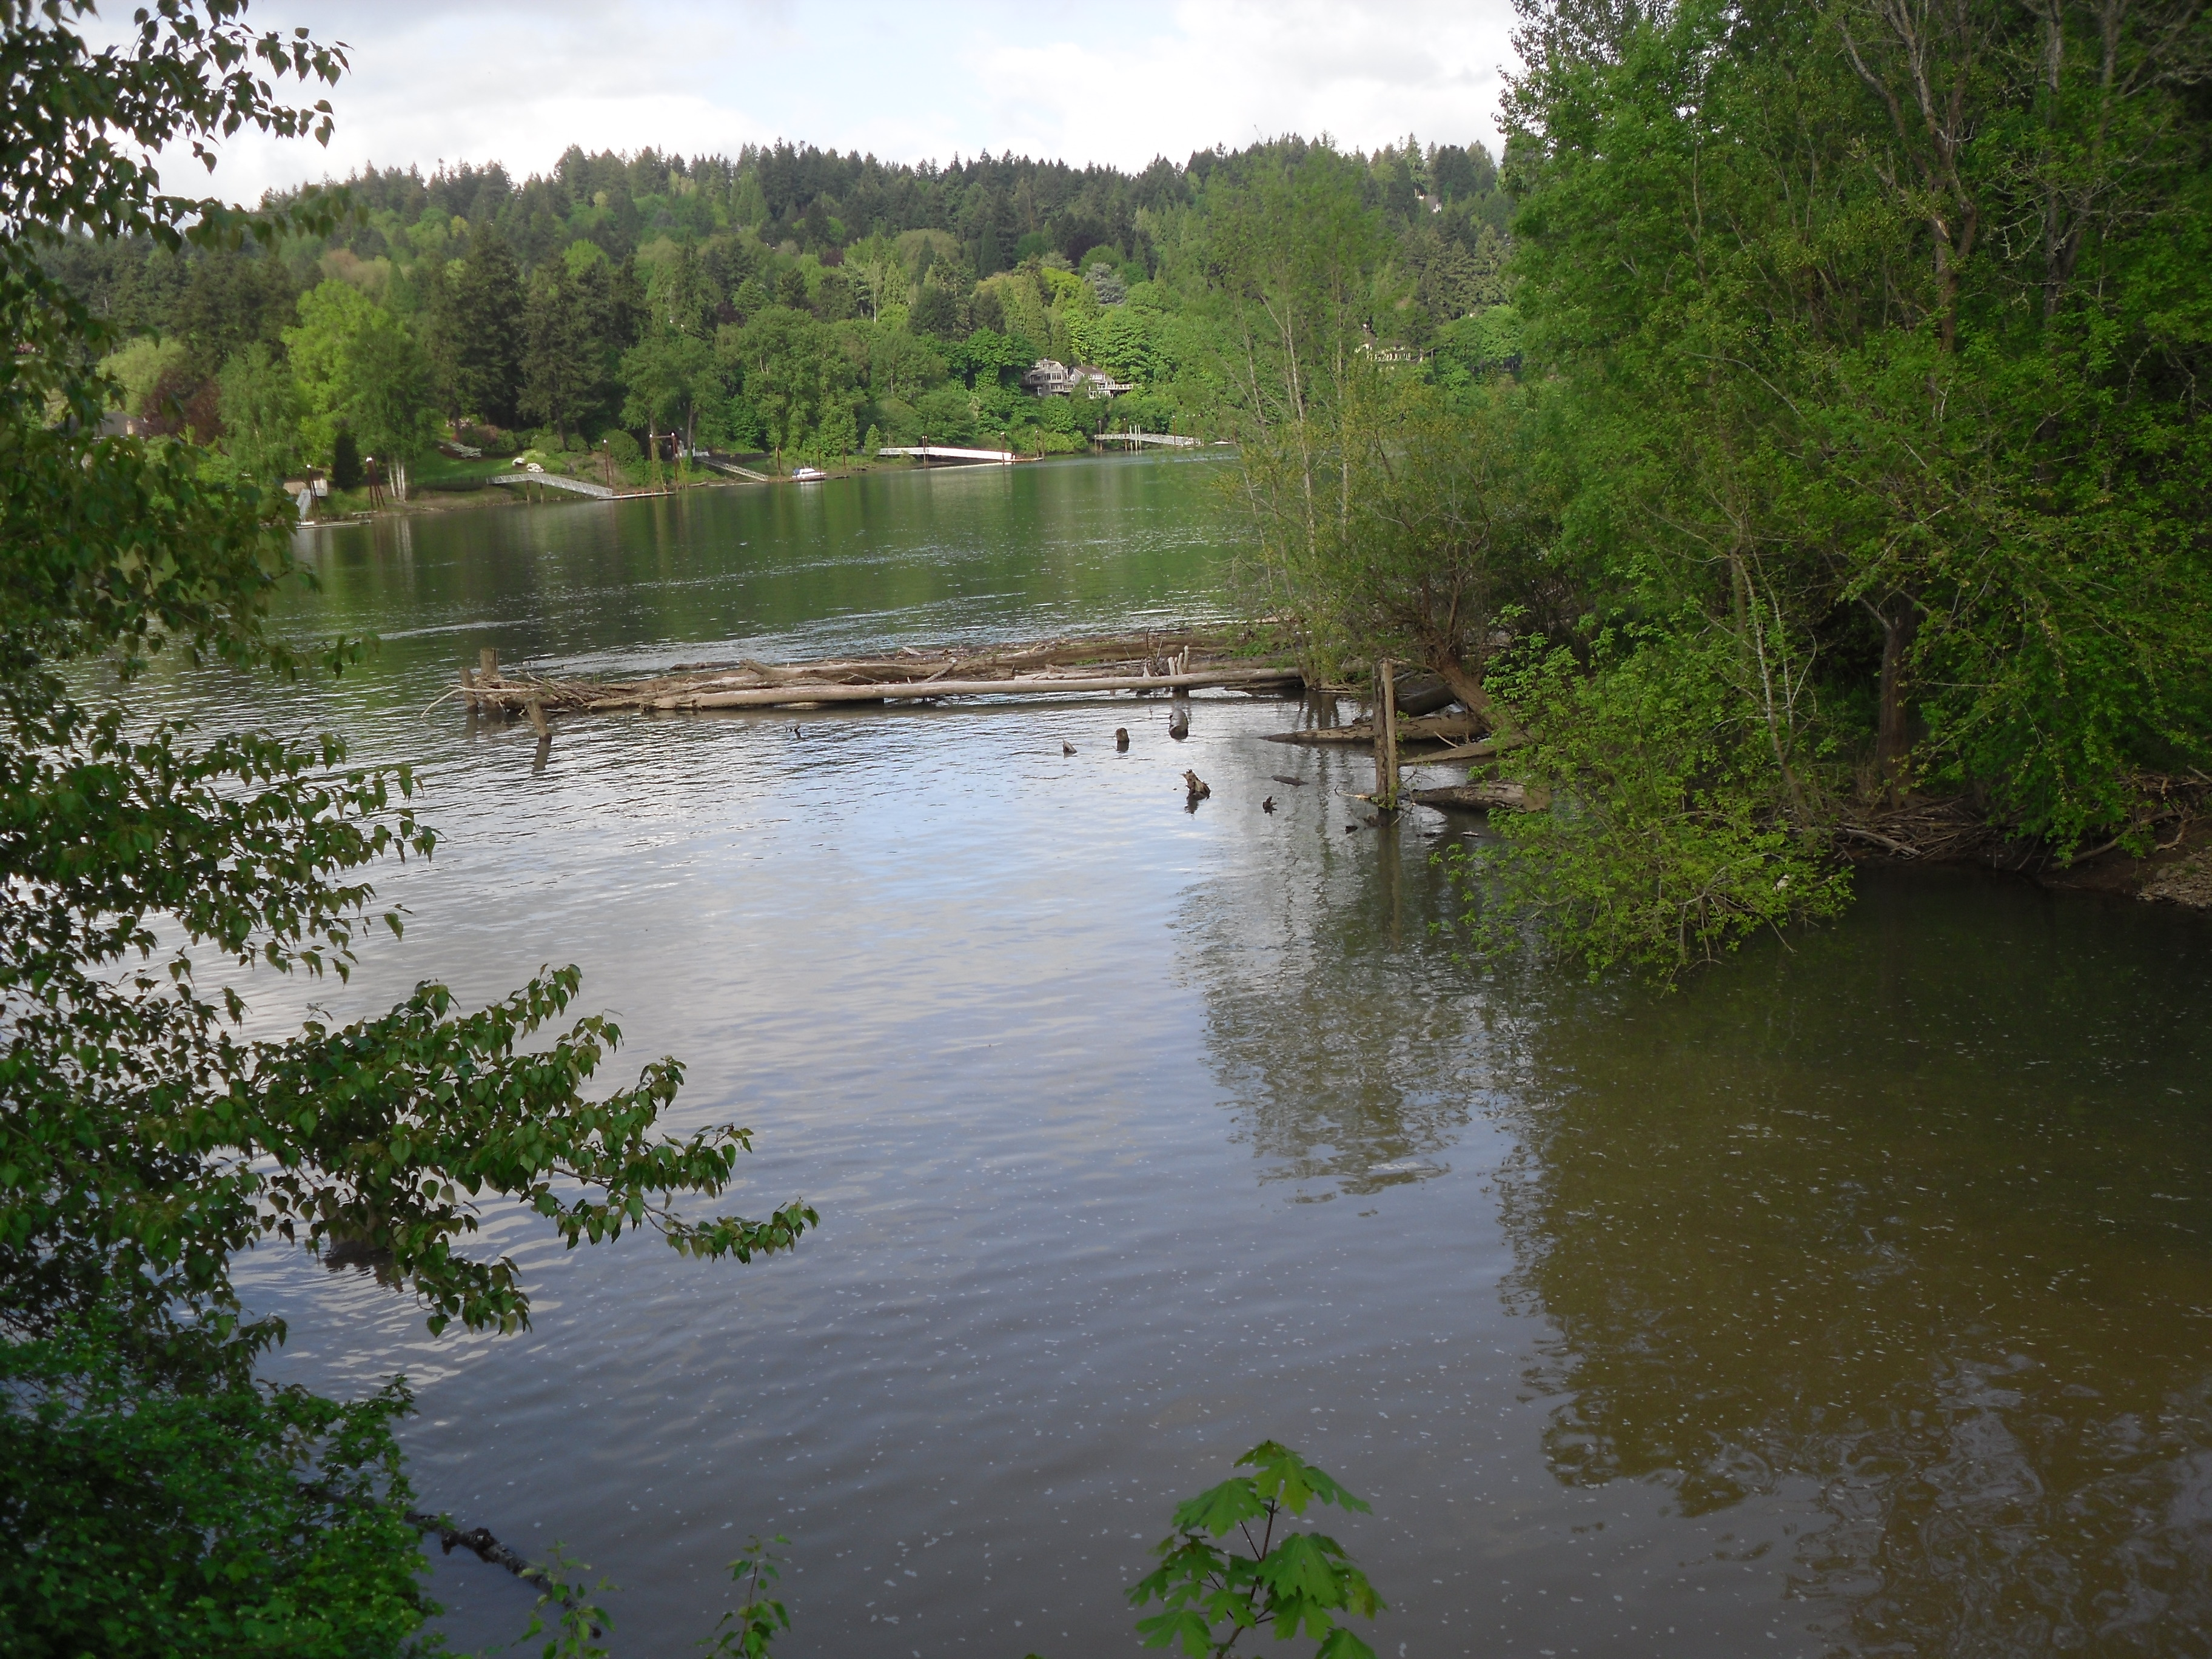 A photograph of the confluence of Johnson Creek and the Willamette River, Portland, Oregon